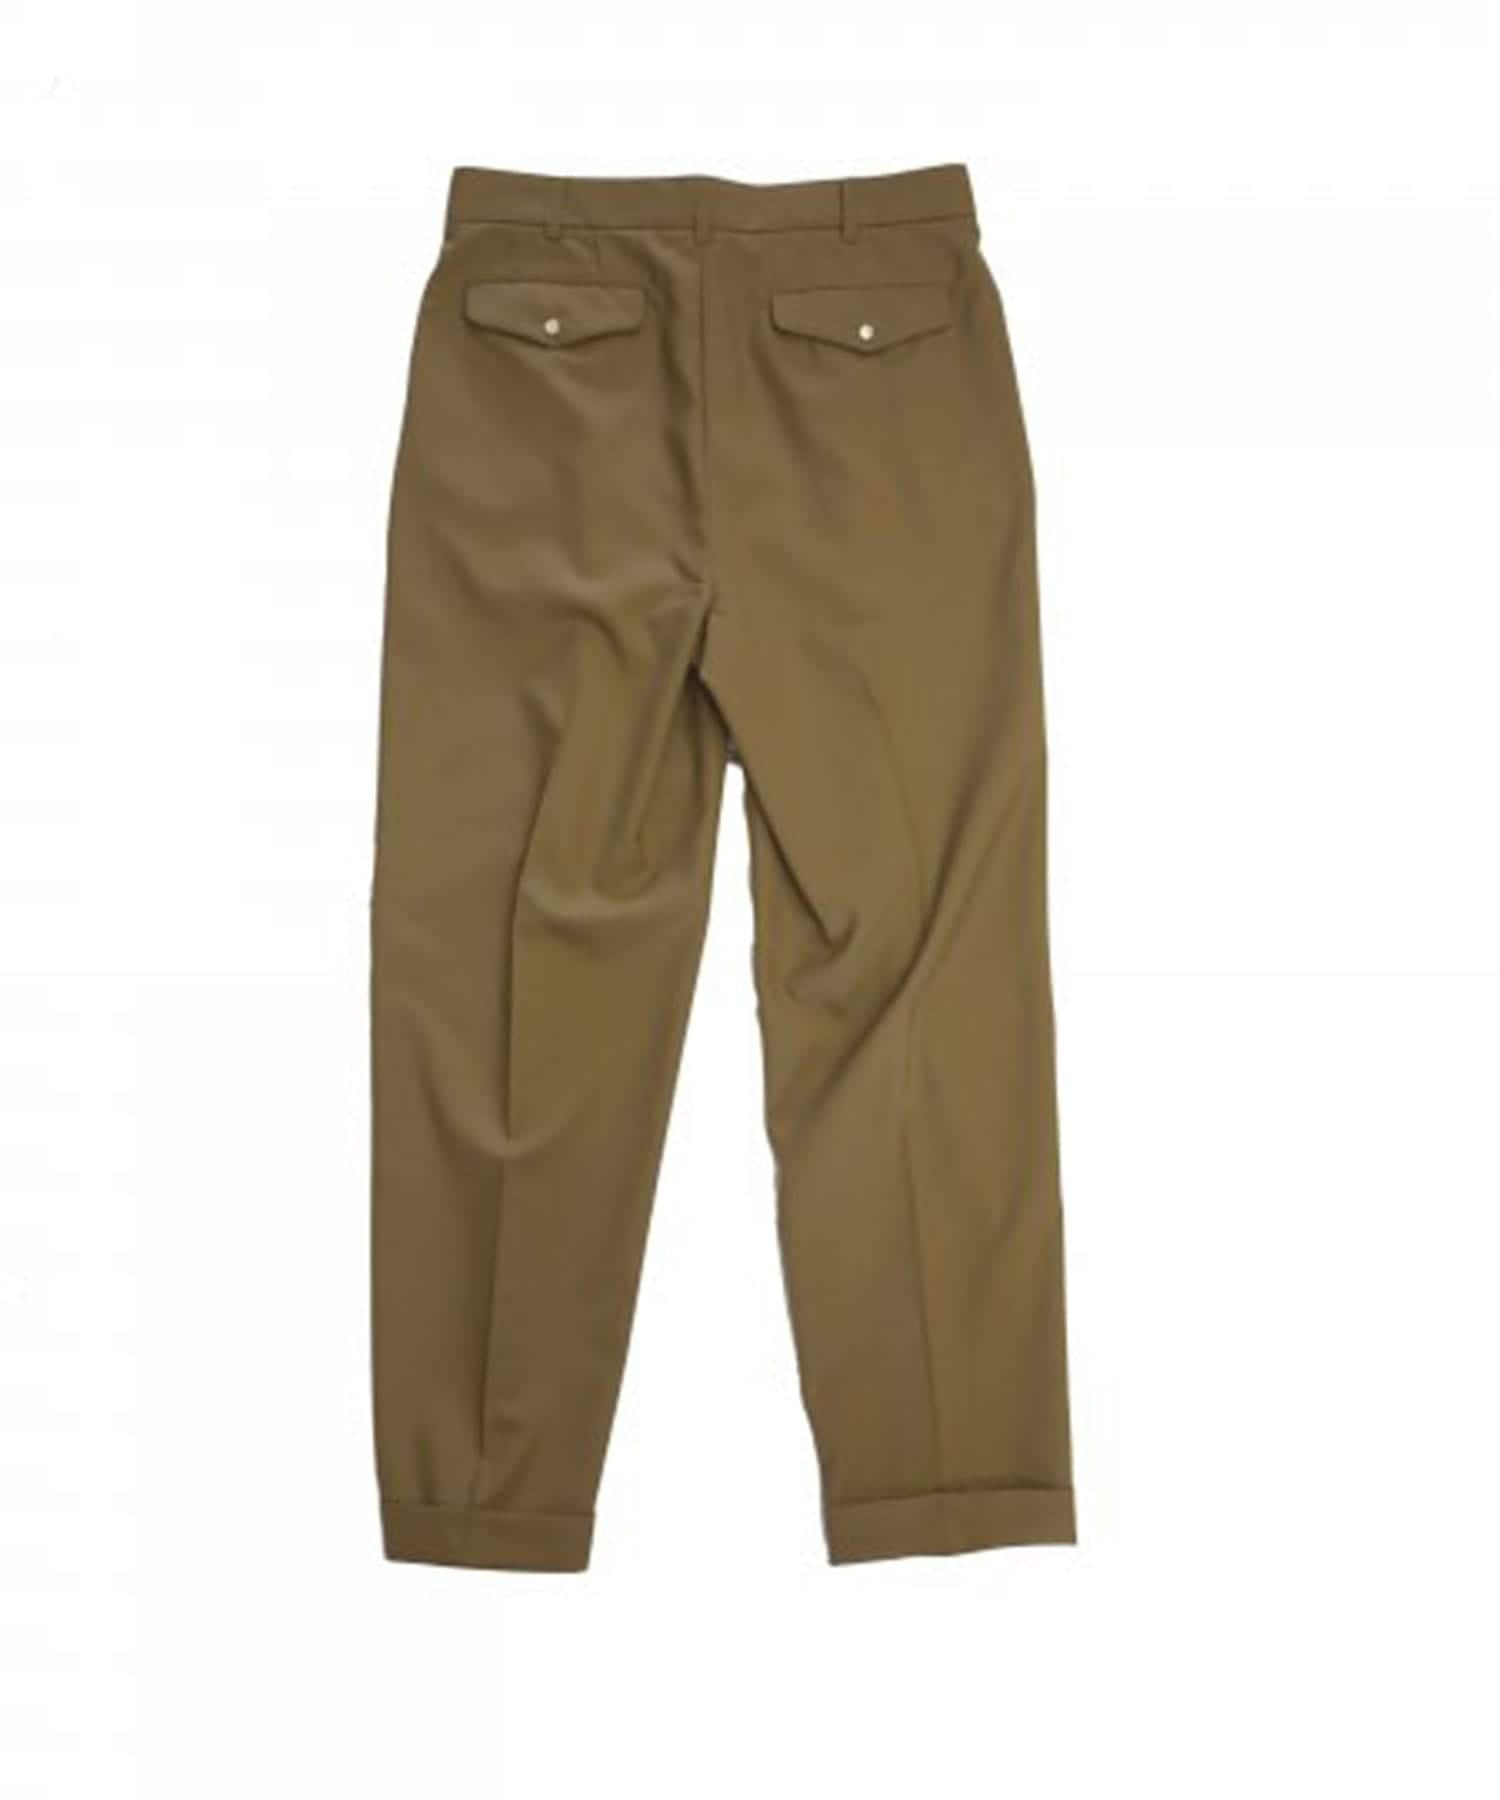 2TUCK TAPERED PANTS JieDa